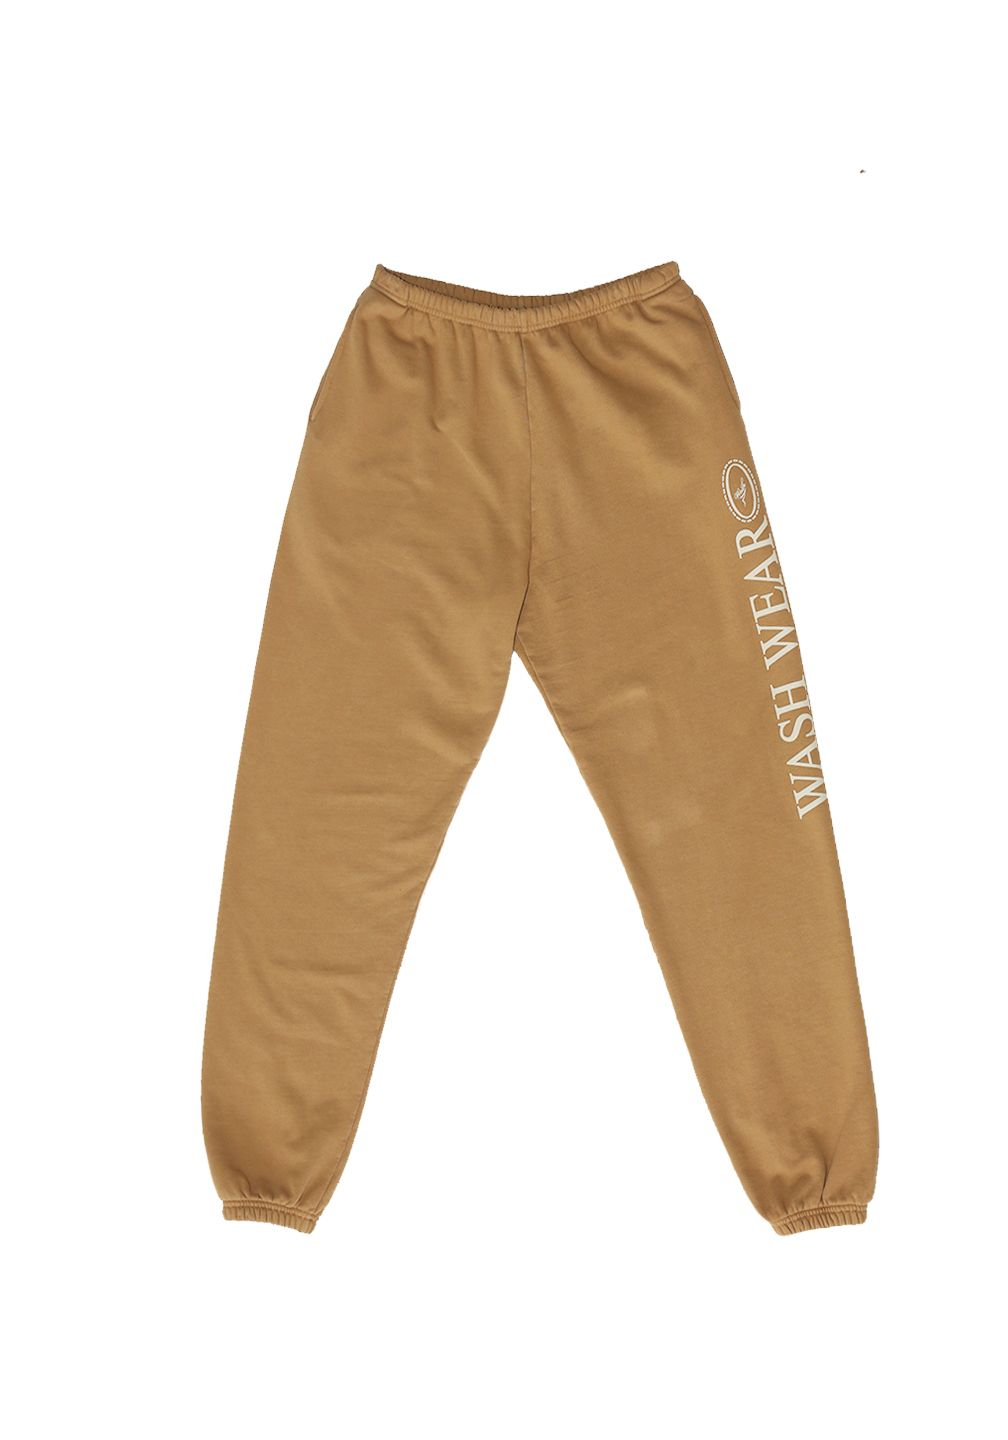 Washwear Sweats_0000_US1A8285